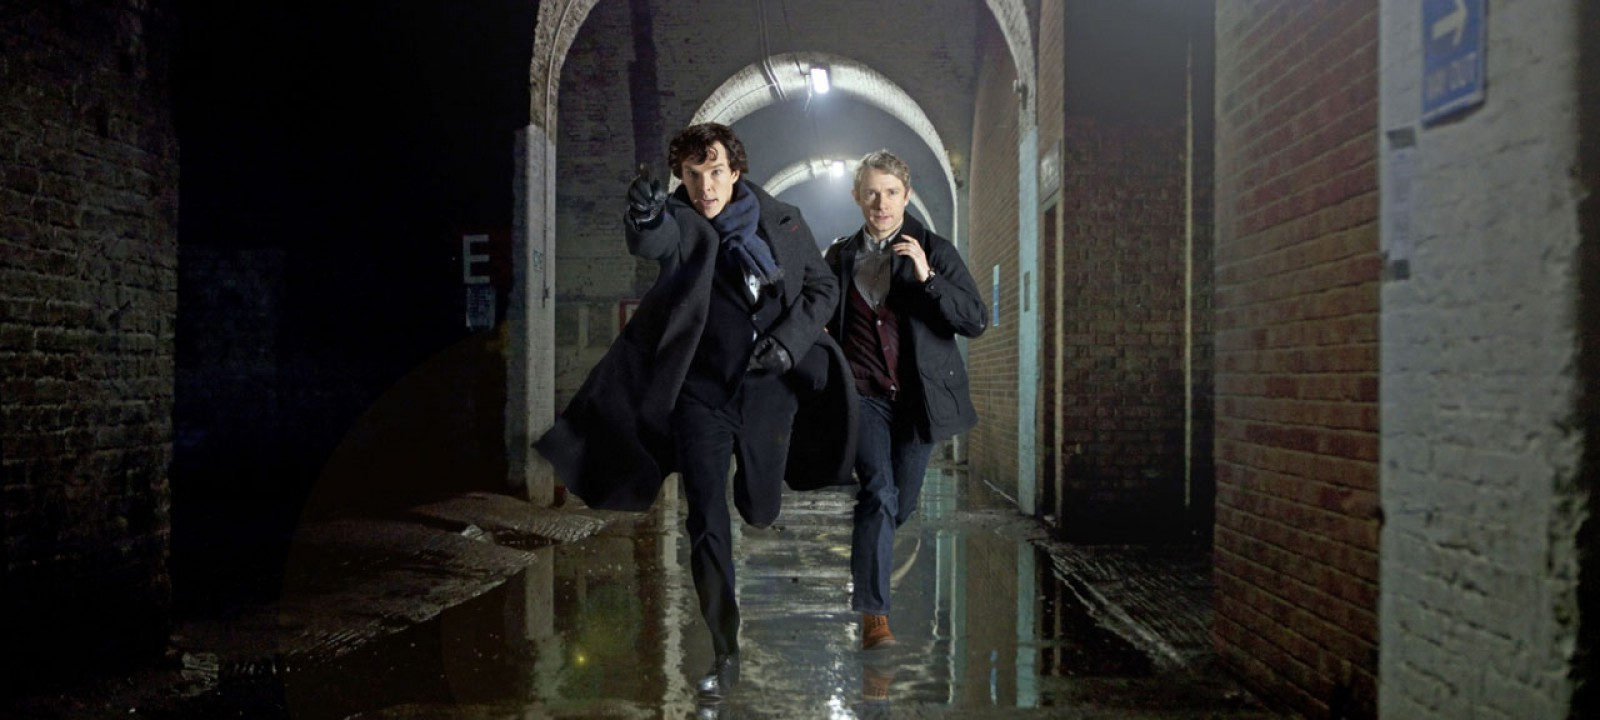 sherlock_about_01_web